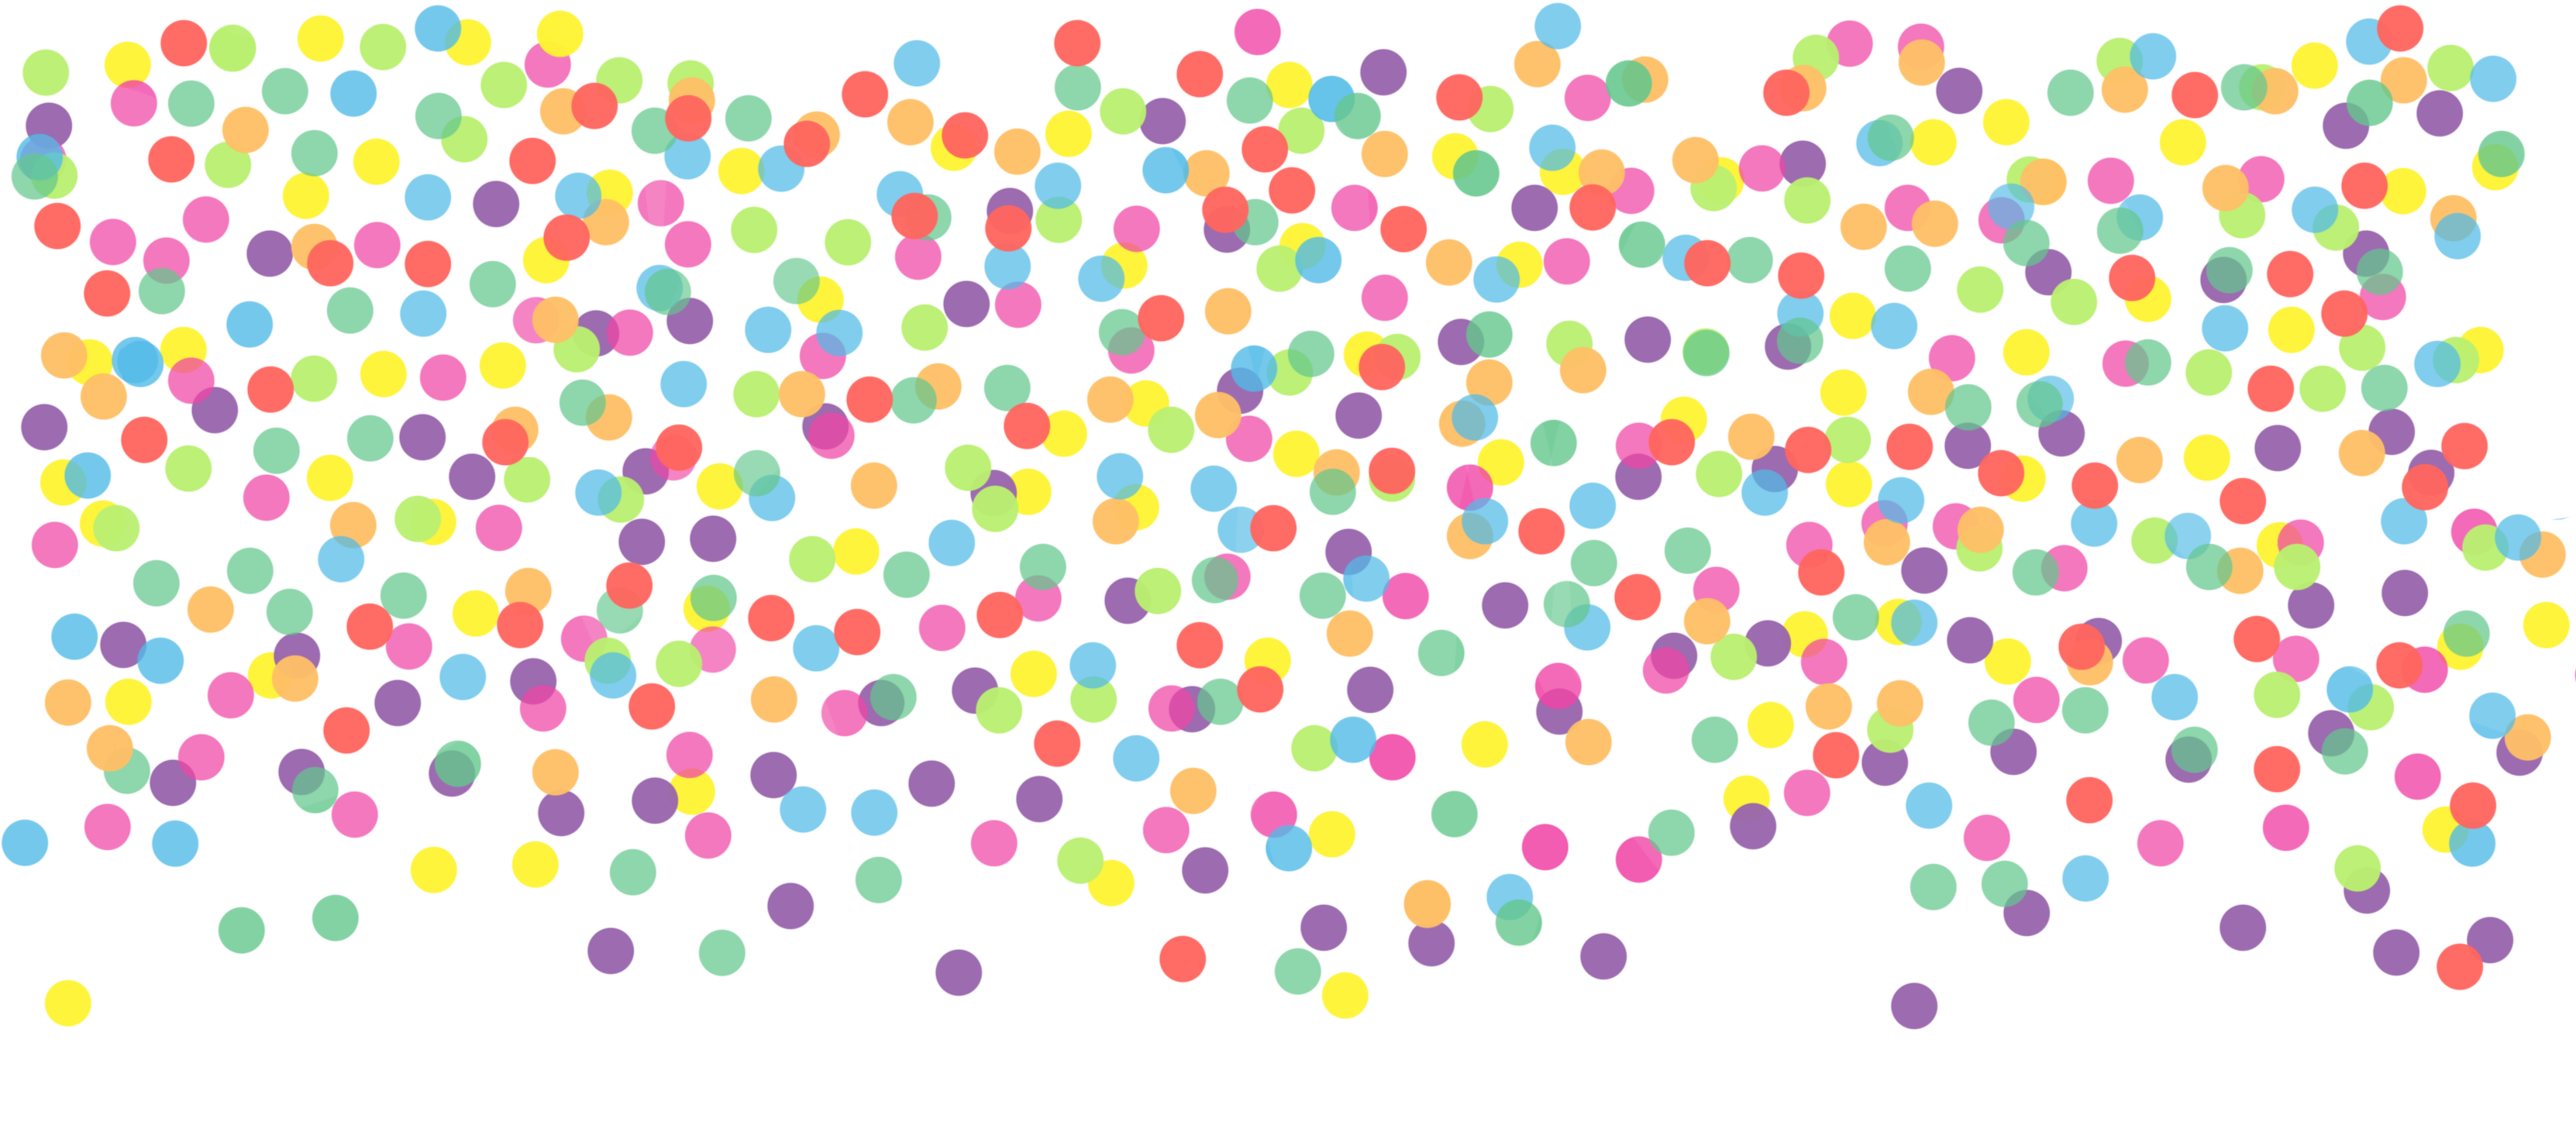 Pbl Confetti Dots Rainbow Sprinkle Png 3324 1479 Confetti Dots Rainbow Sprinkles Gold Pattern